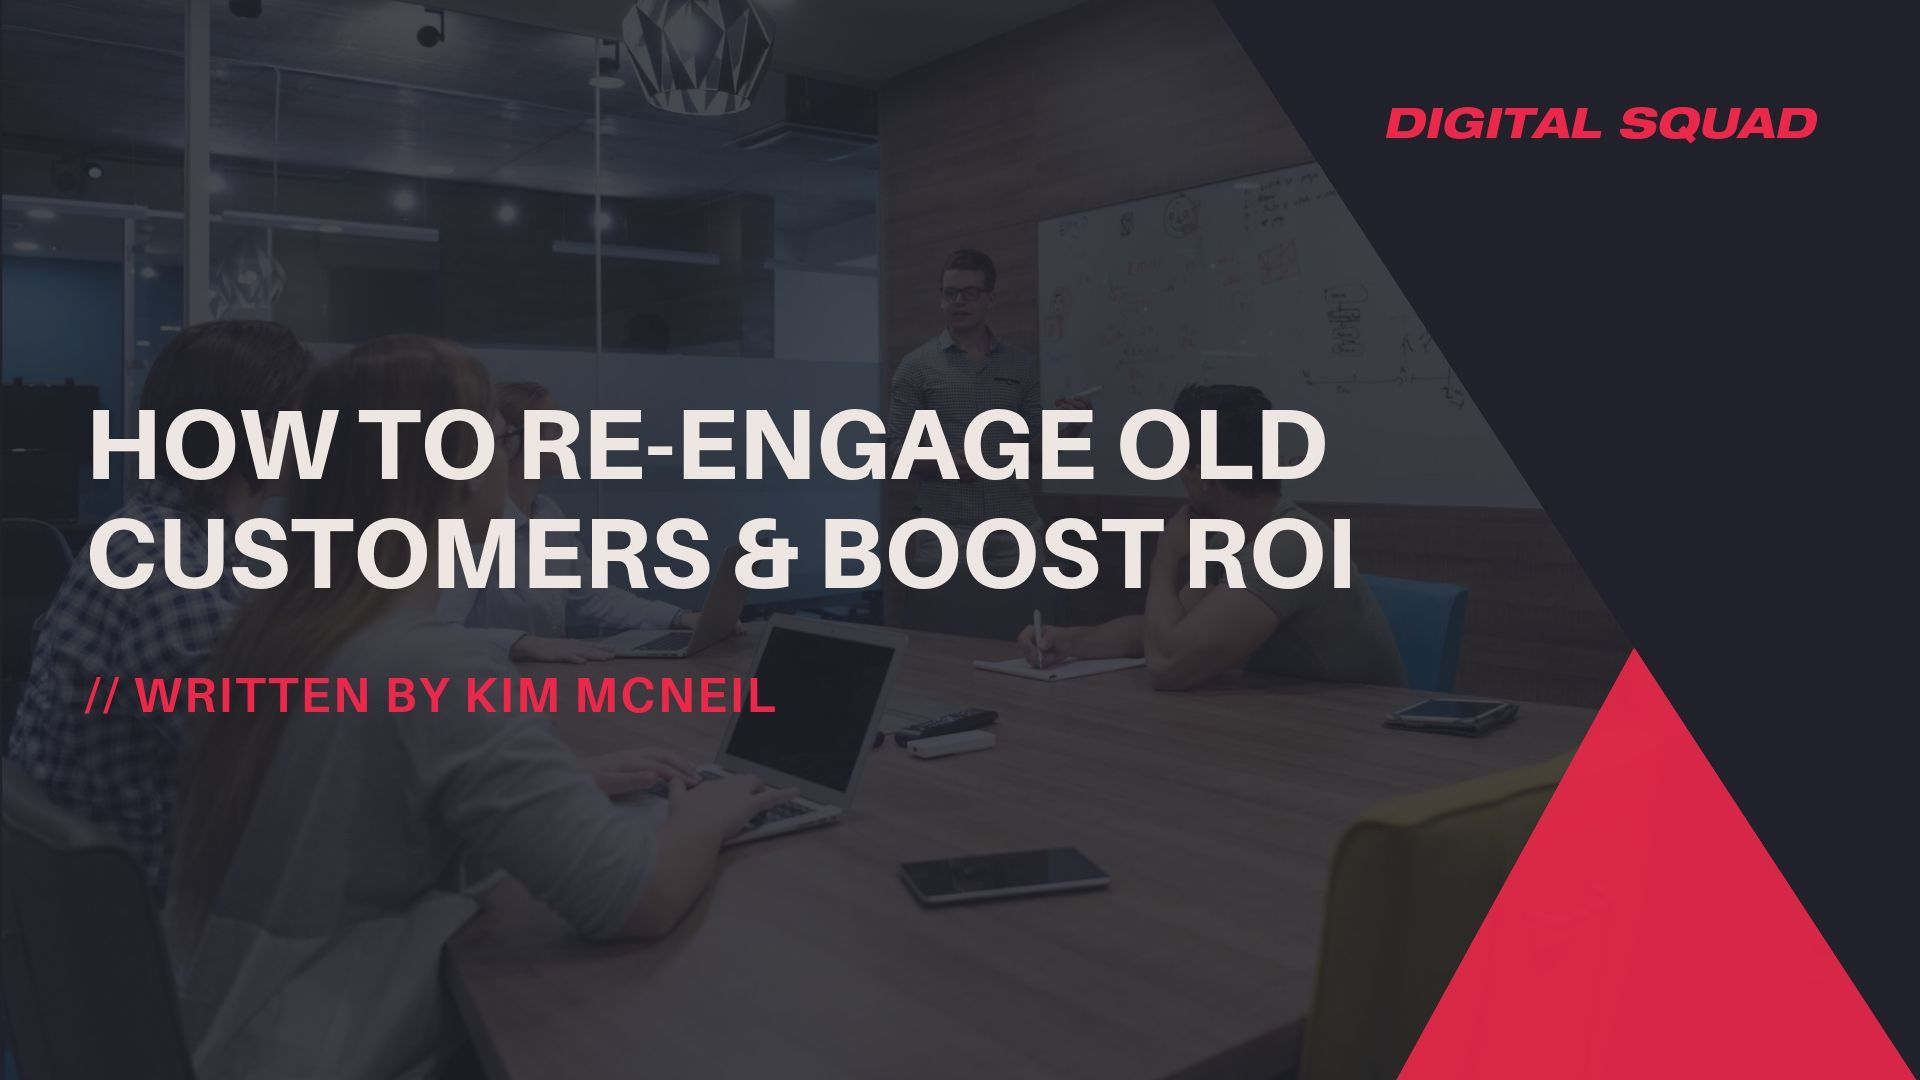 Win back old customers with digital marketing agency Melbourne